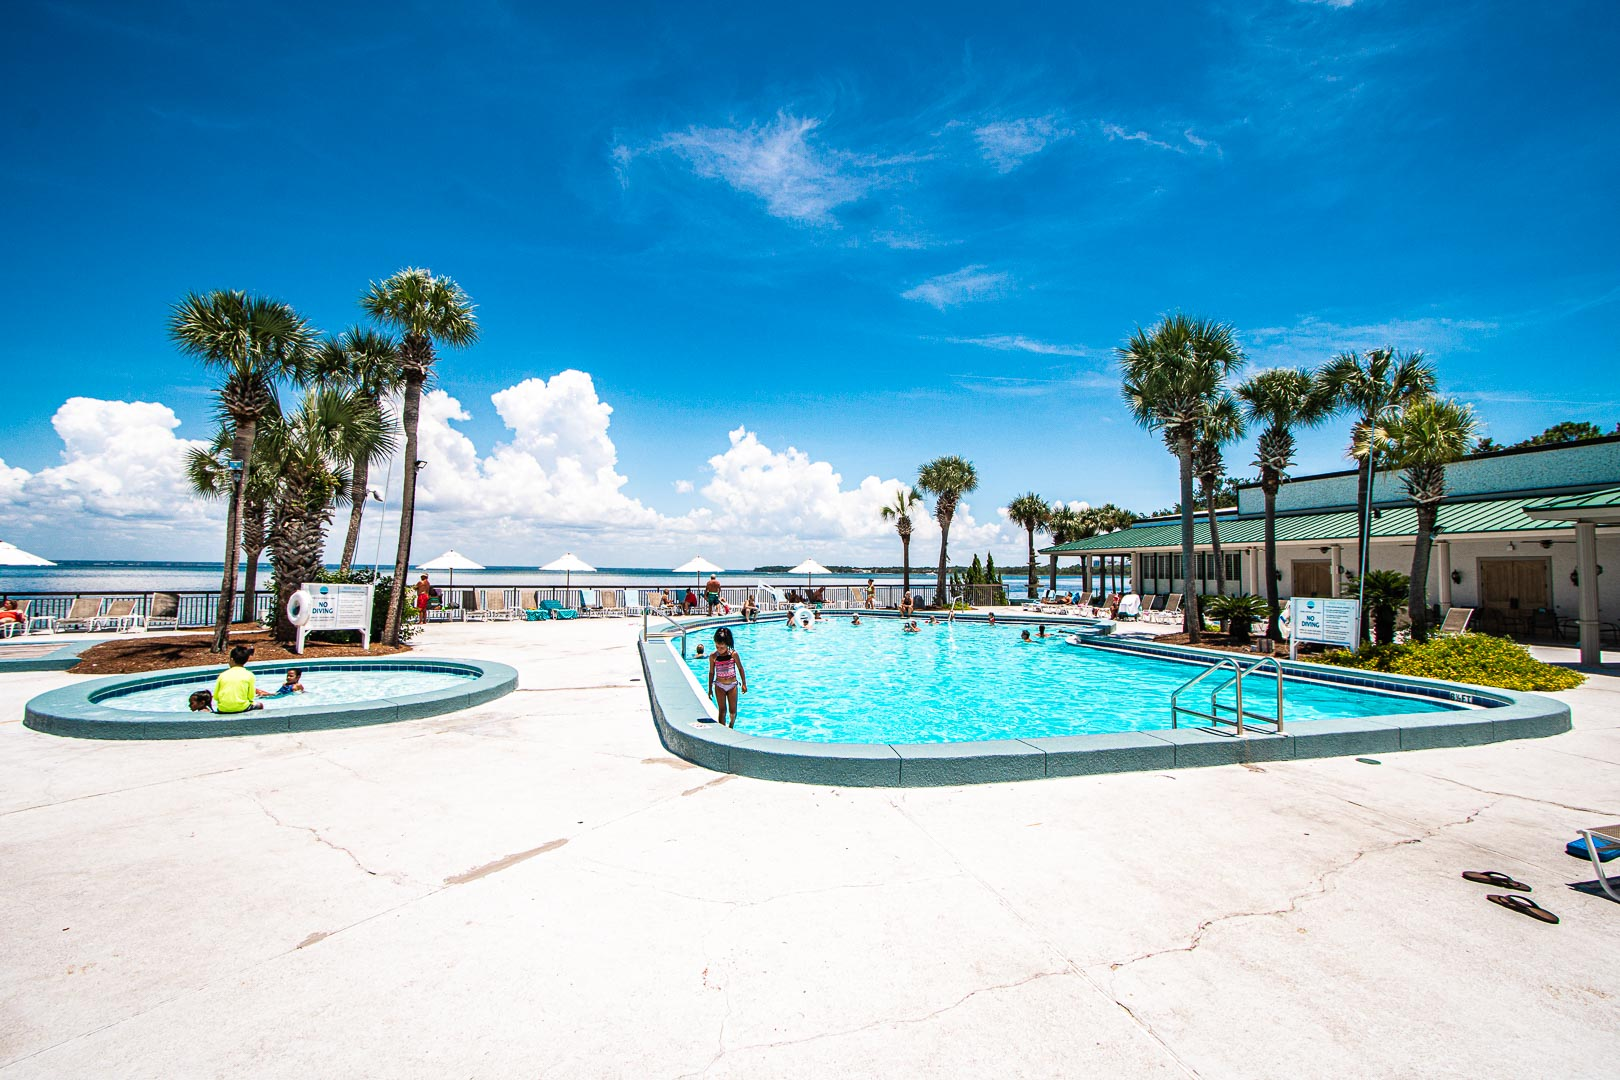 A colorful swimming pool at VRI's Bay Club of Sandestin in Florida.